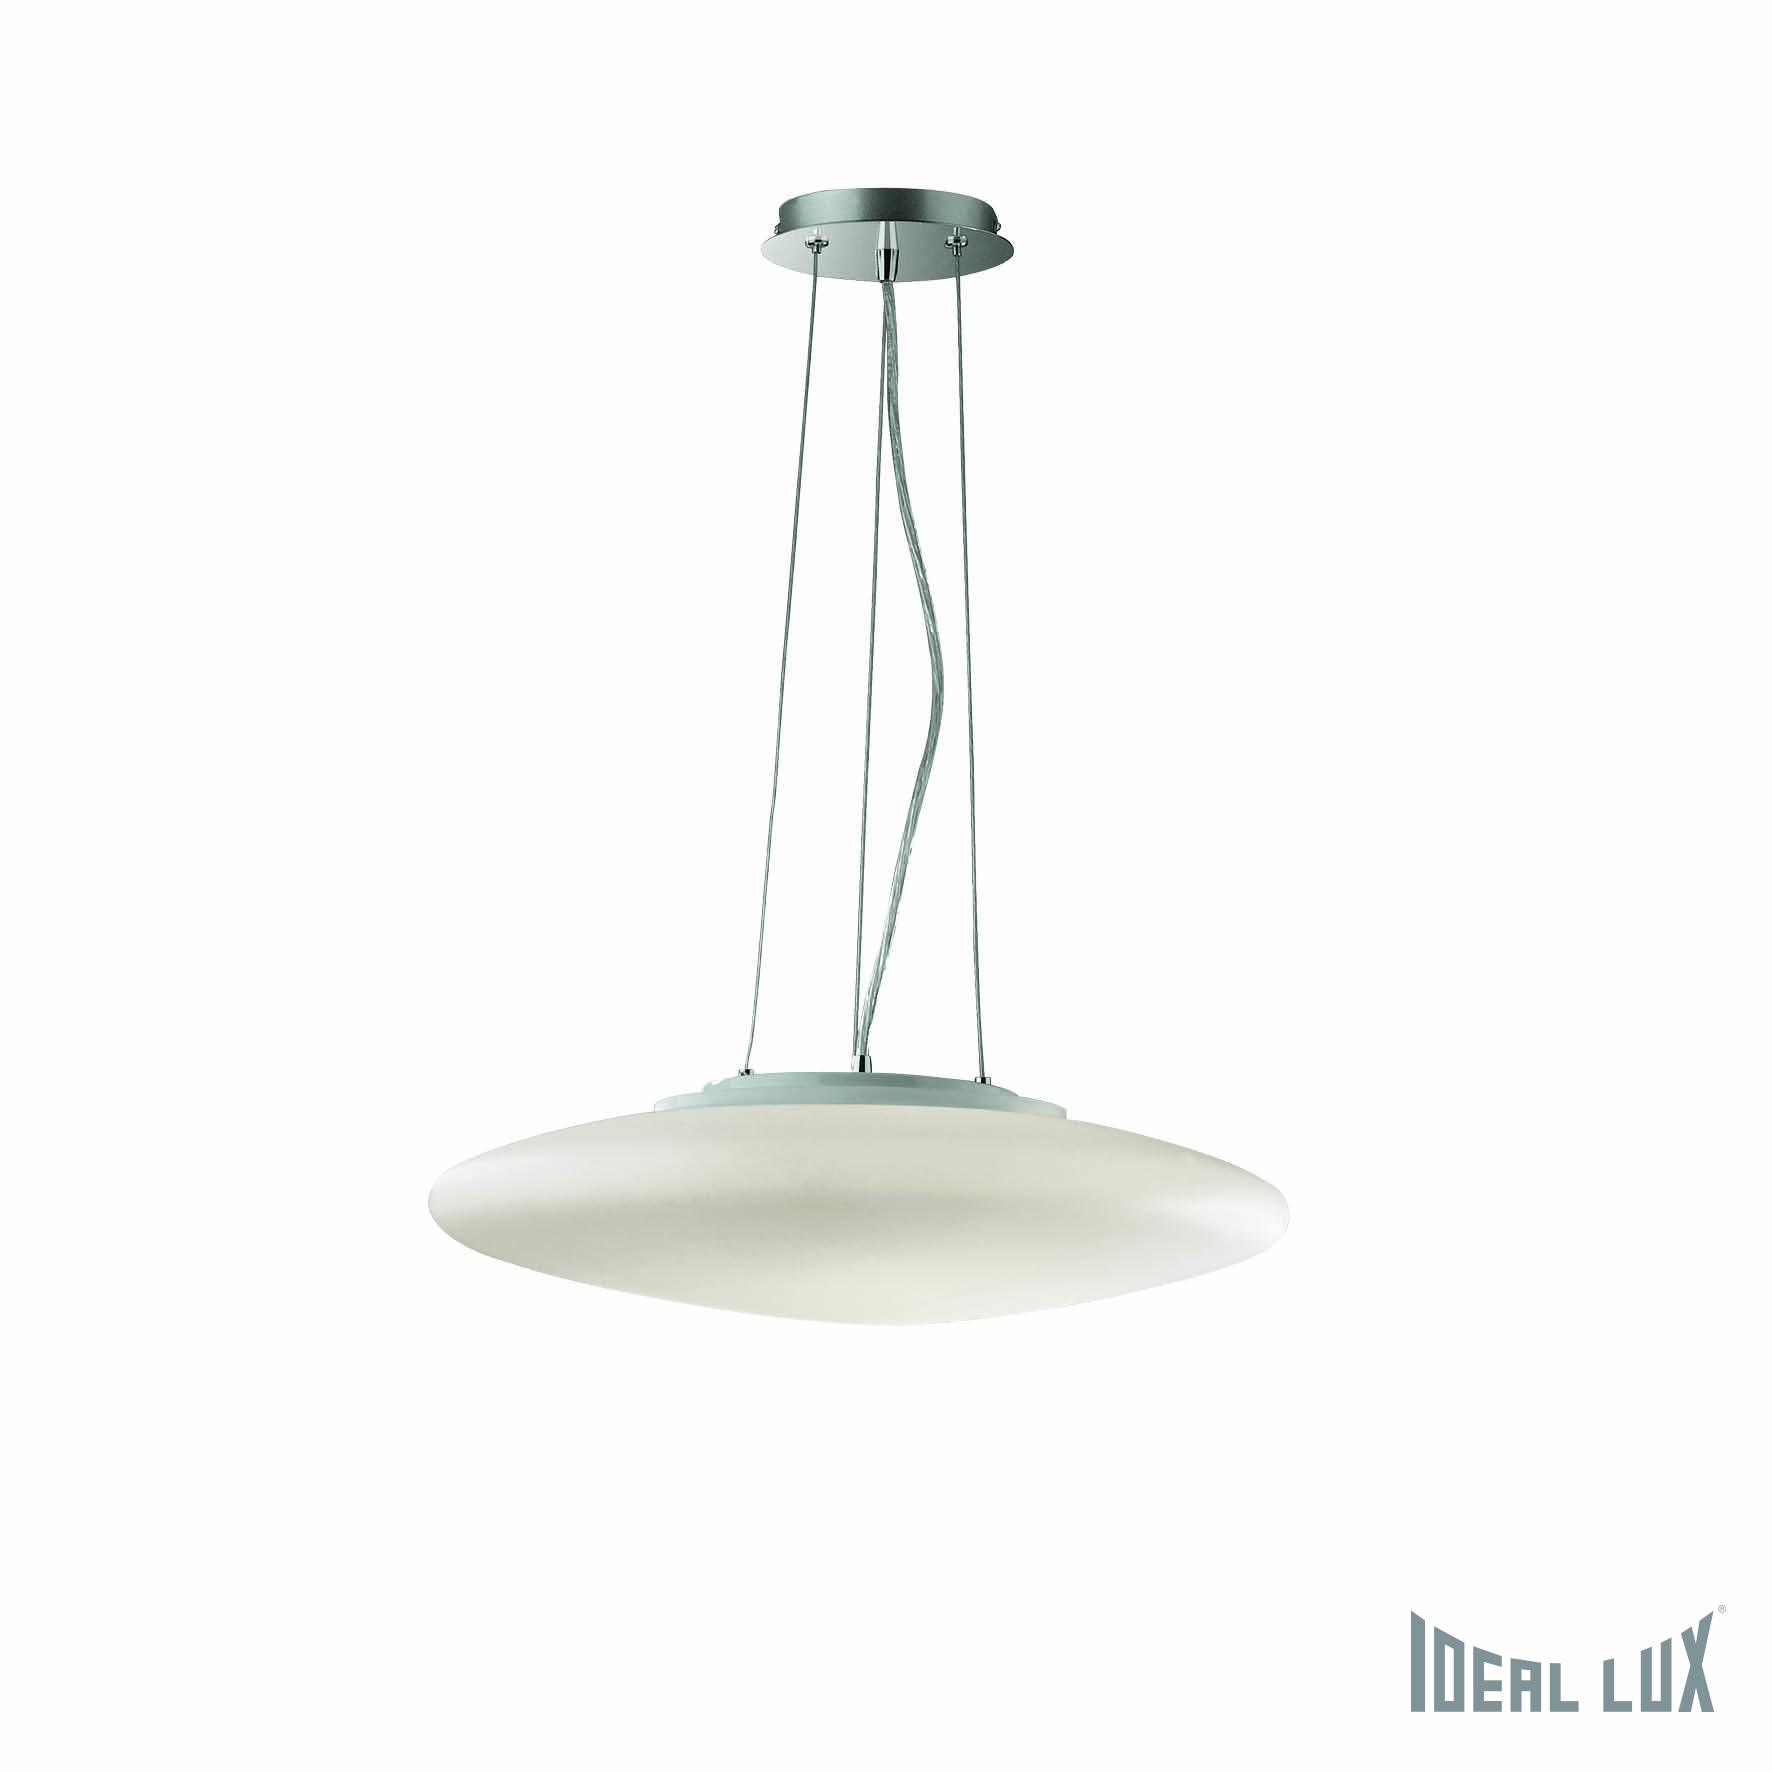 Светильник подвесной Ideal Lux Smarties SMARTIES BIANCO SP3 D40 ideal lux люстра ideal lux le roy sp3